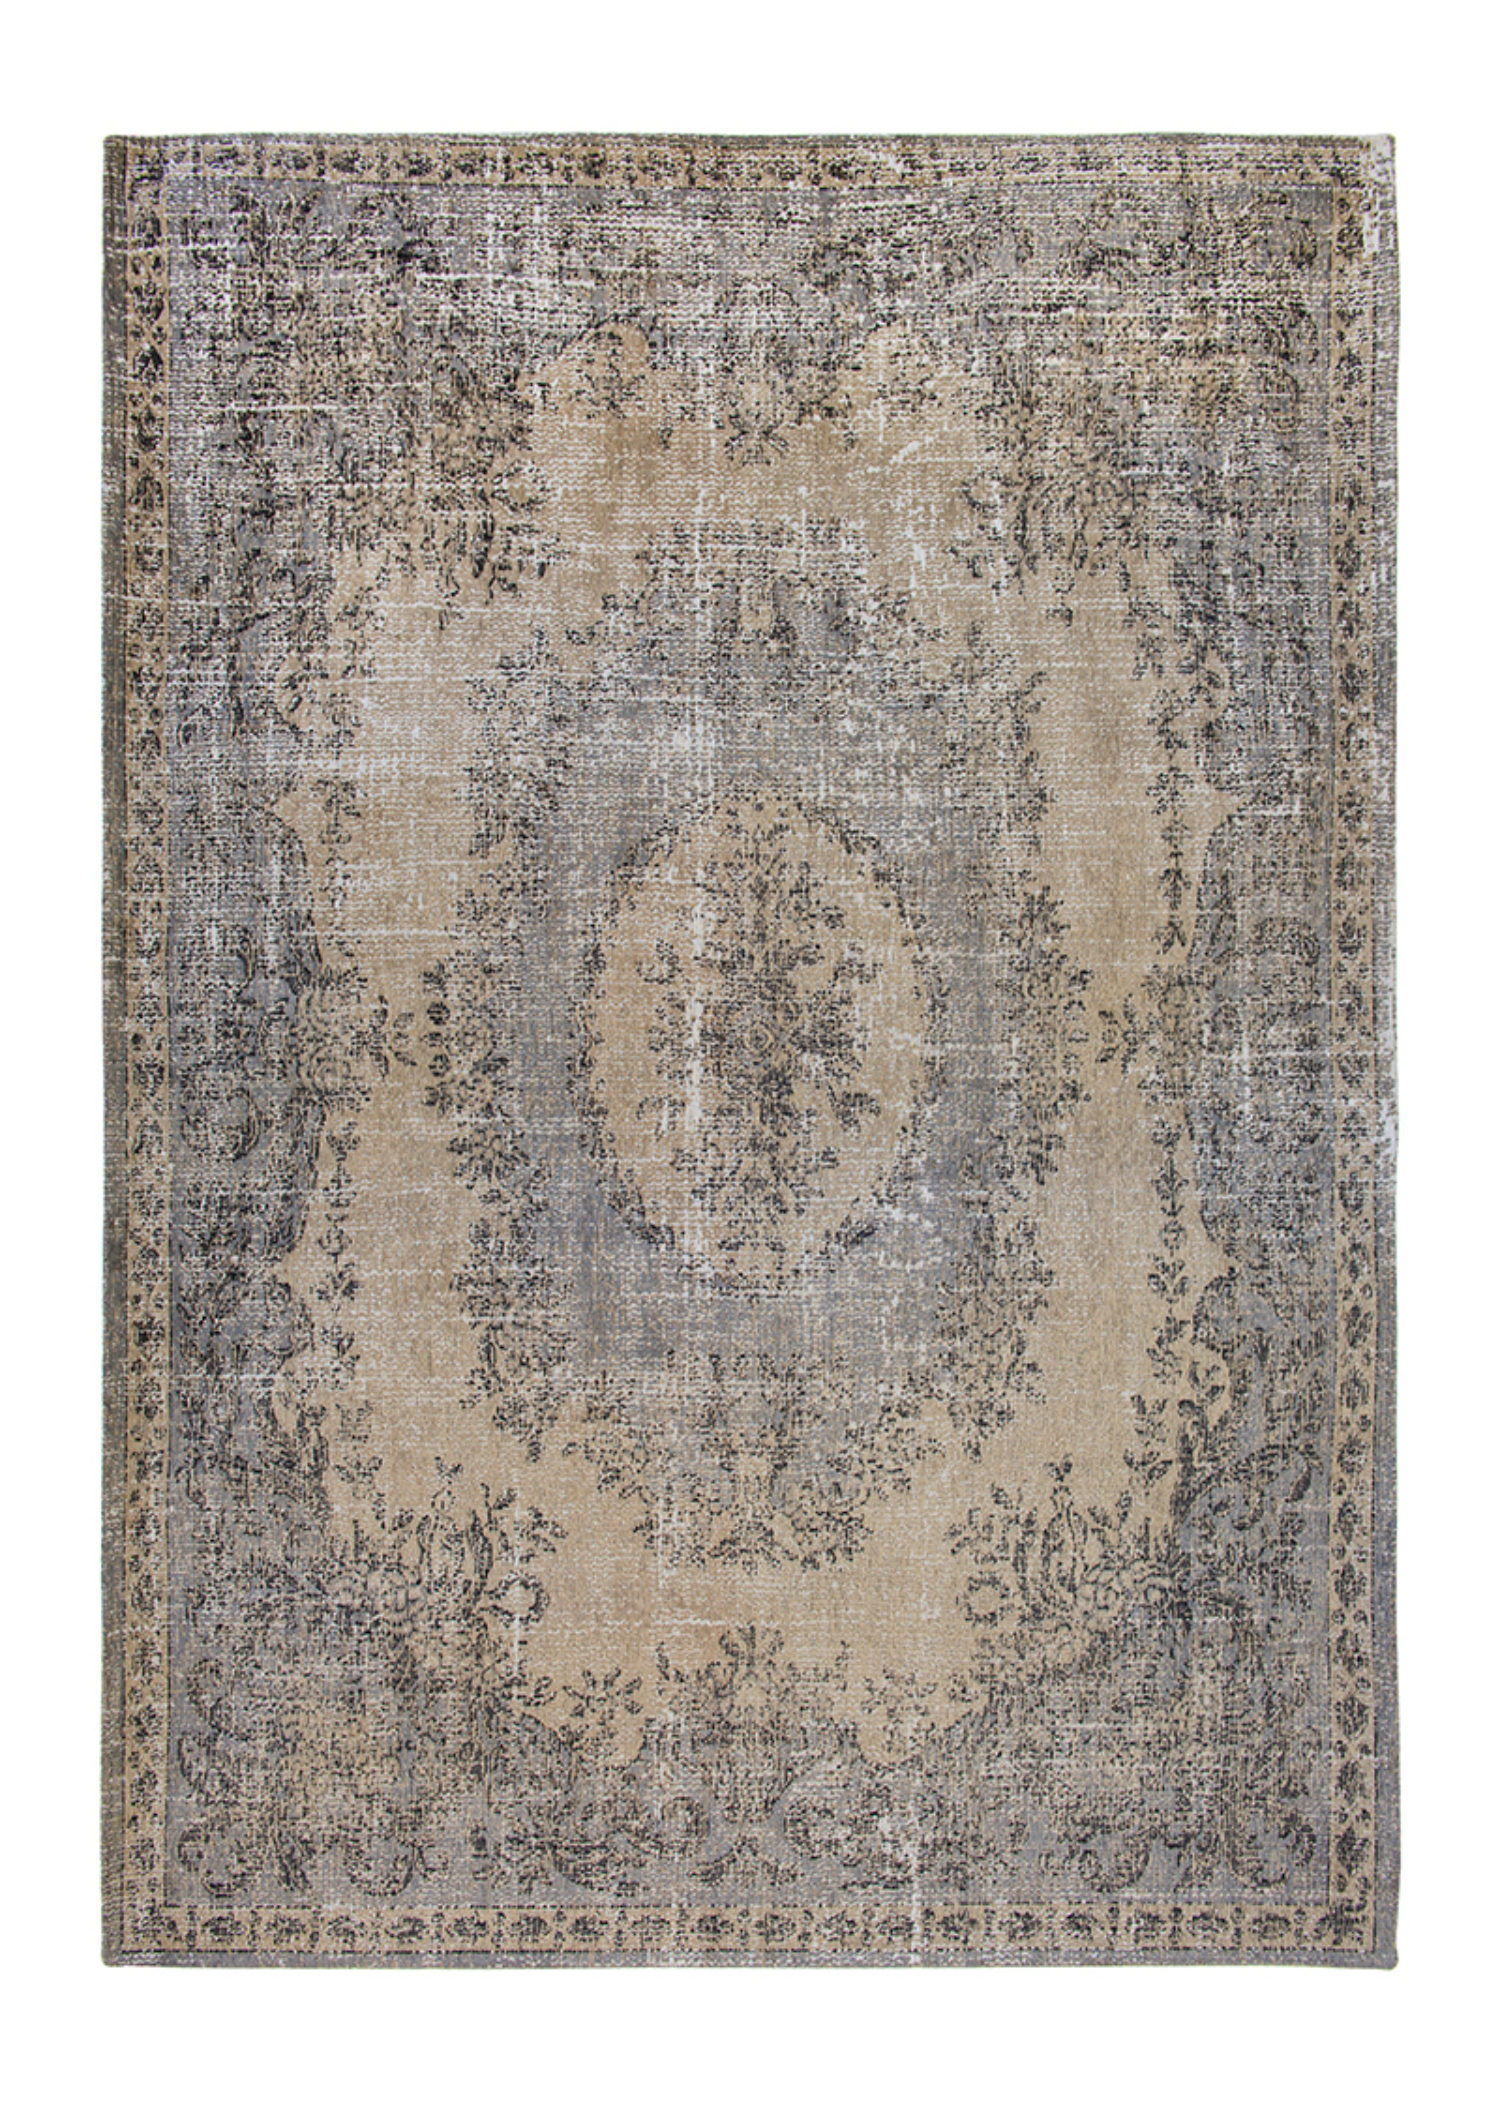 Palazzo Collection - Da Mosto Colonna Taupe 9138